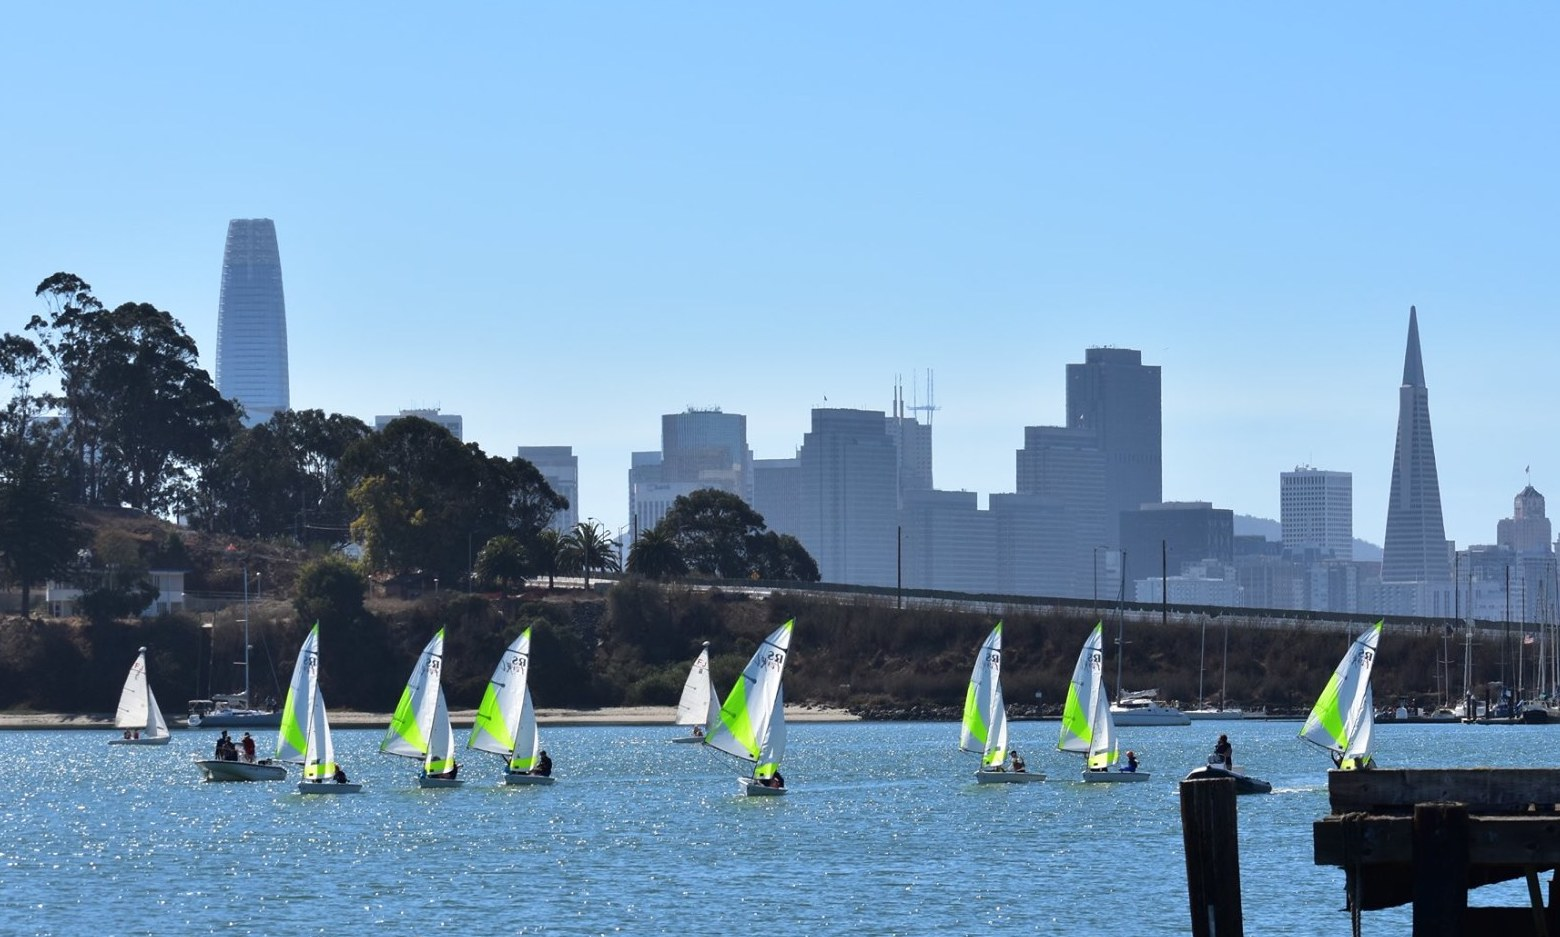 Small sailboats on the Bay